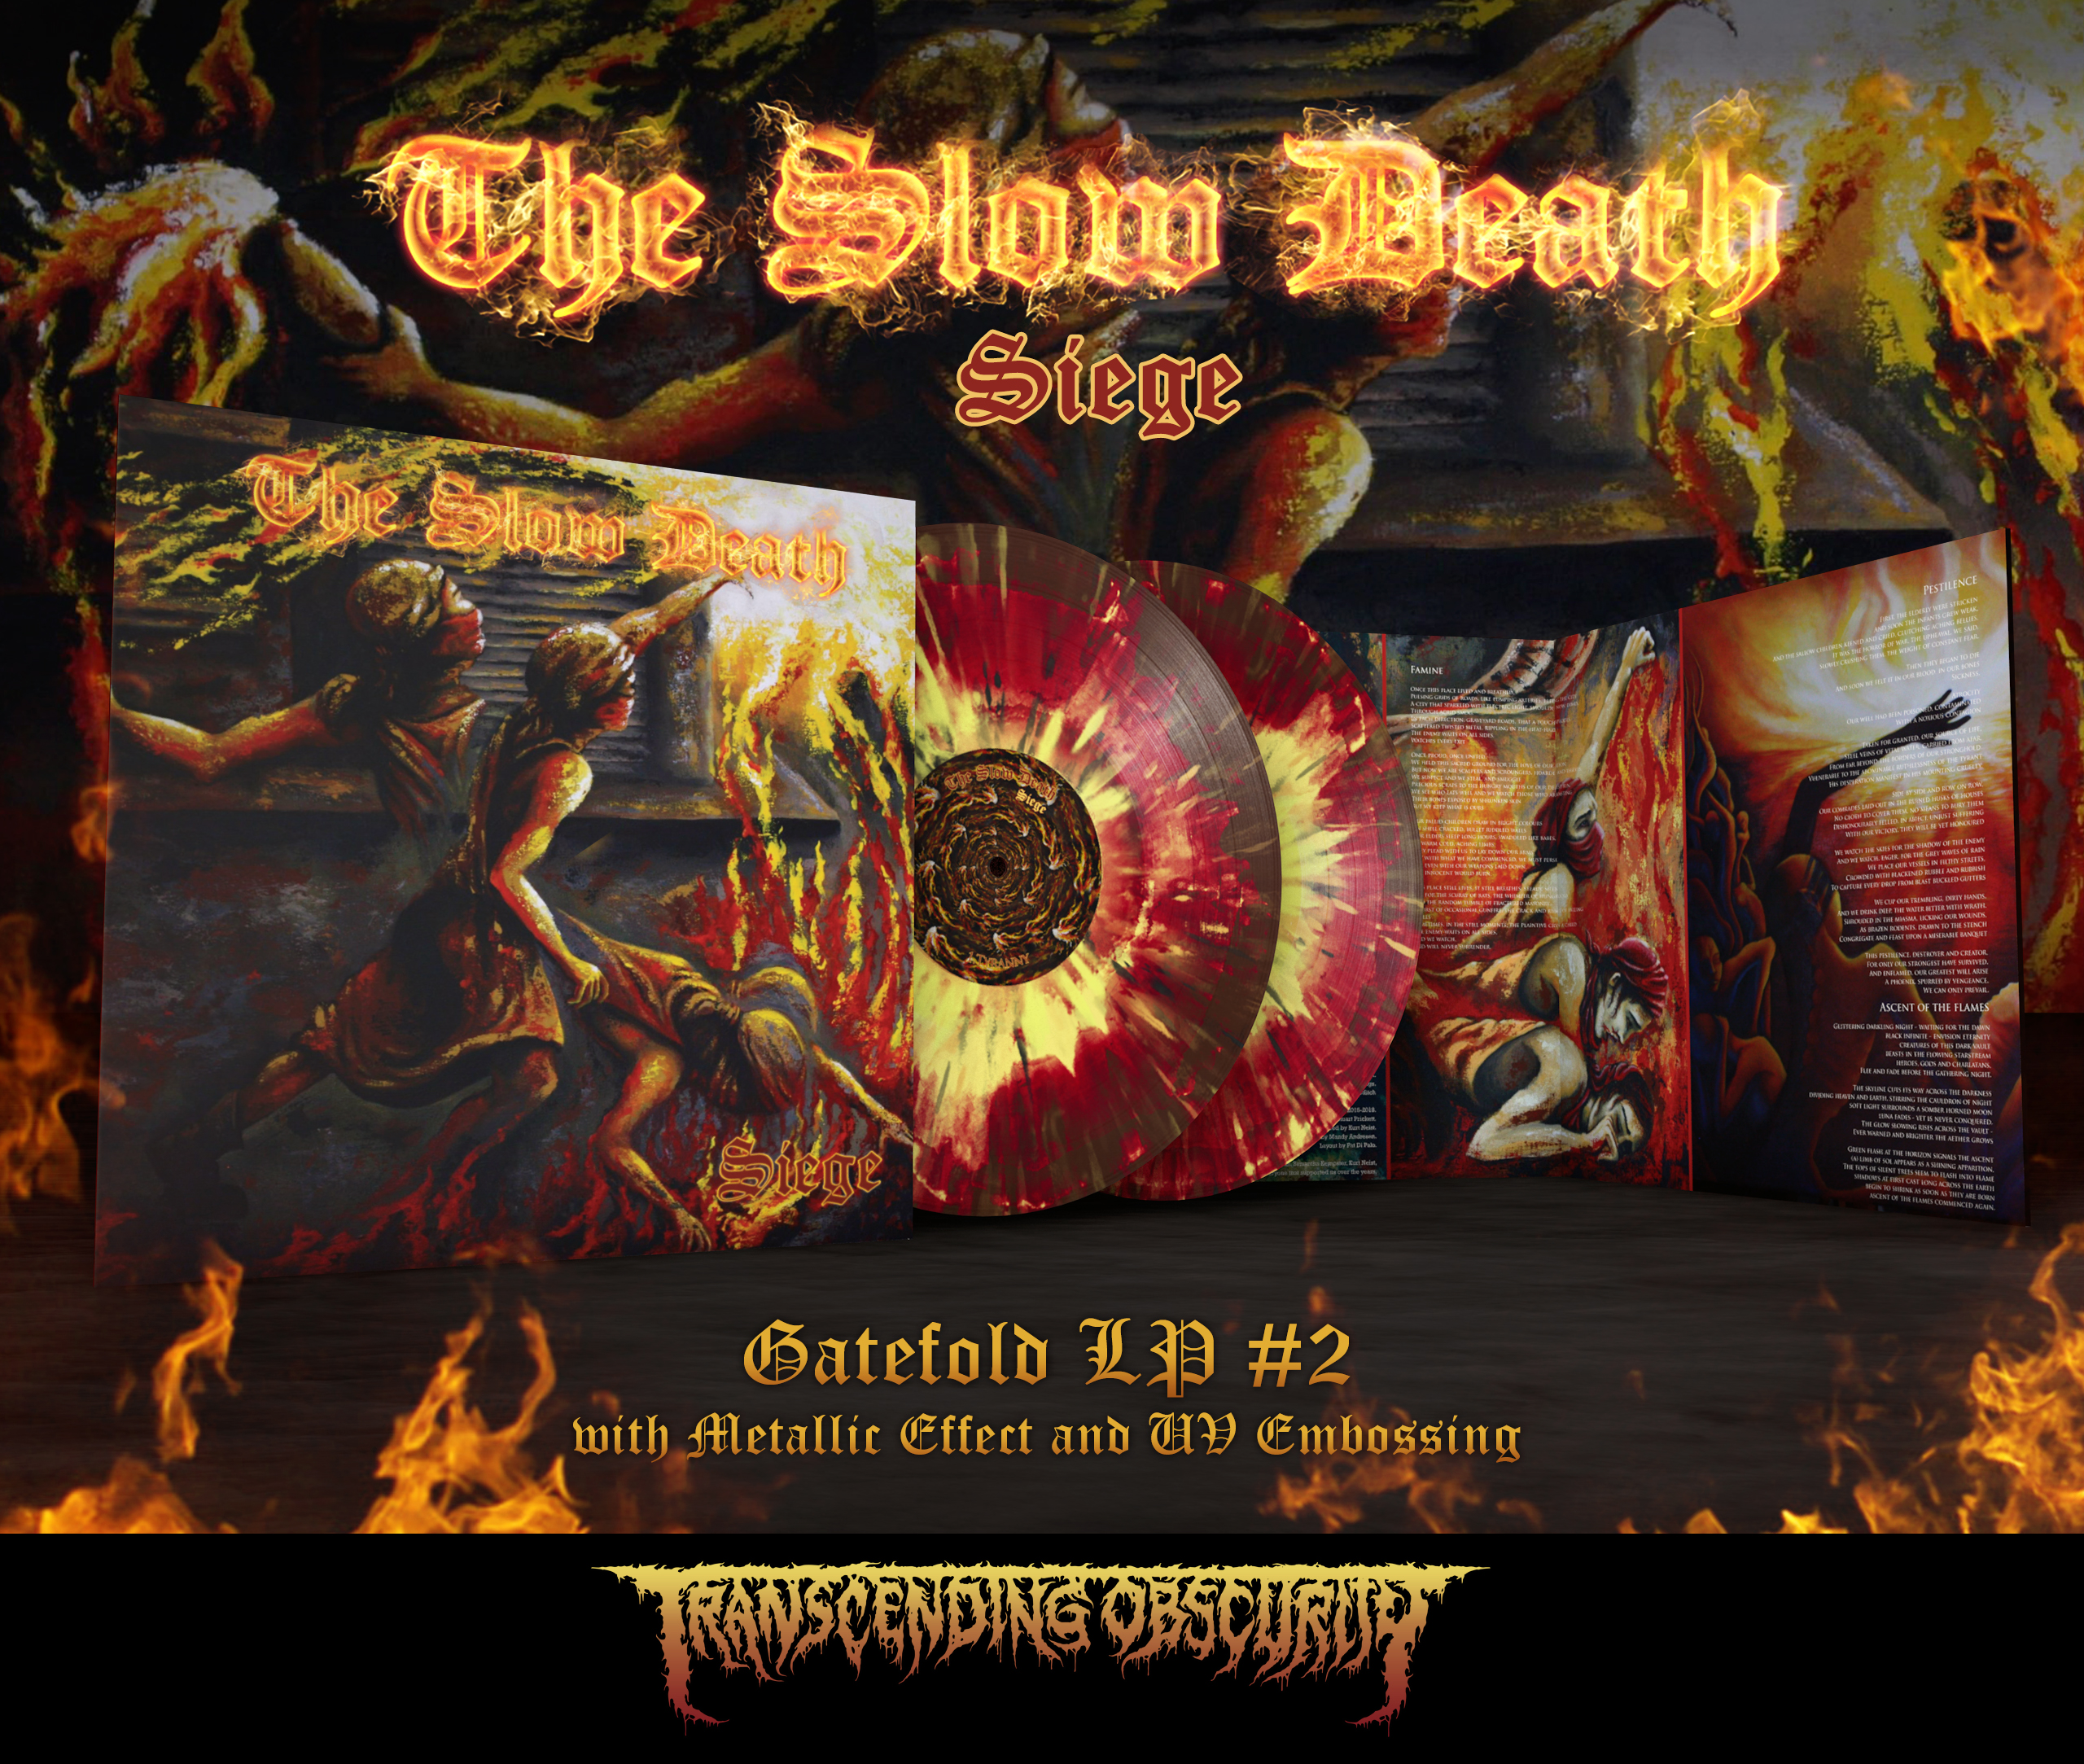 THE SLOW DEATH - Siege Gatefold Double LP with Metallic Effect and Embossing (Limited to 75 per variant)